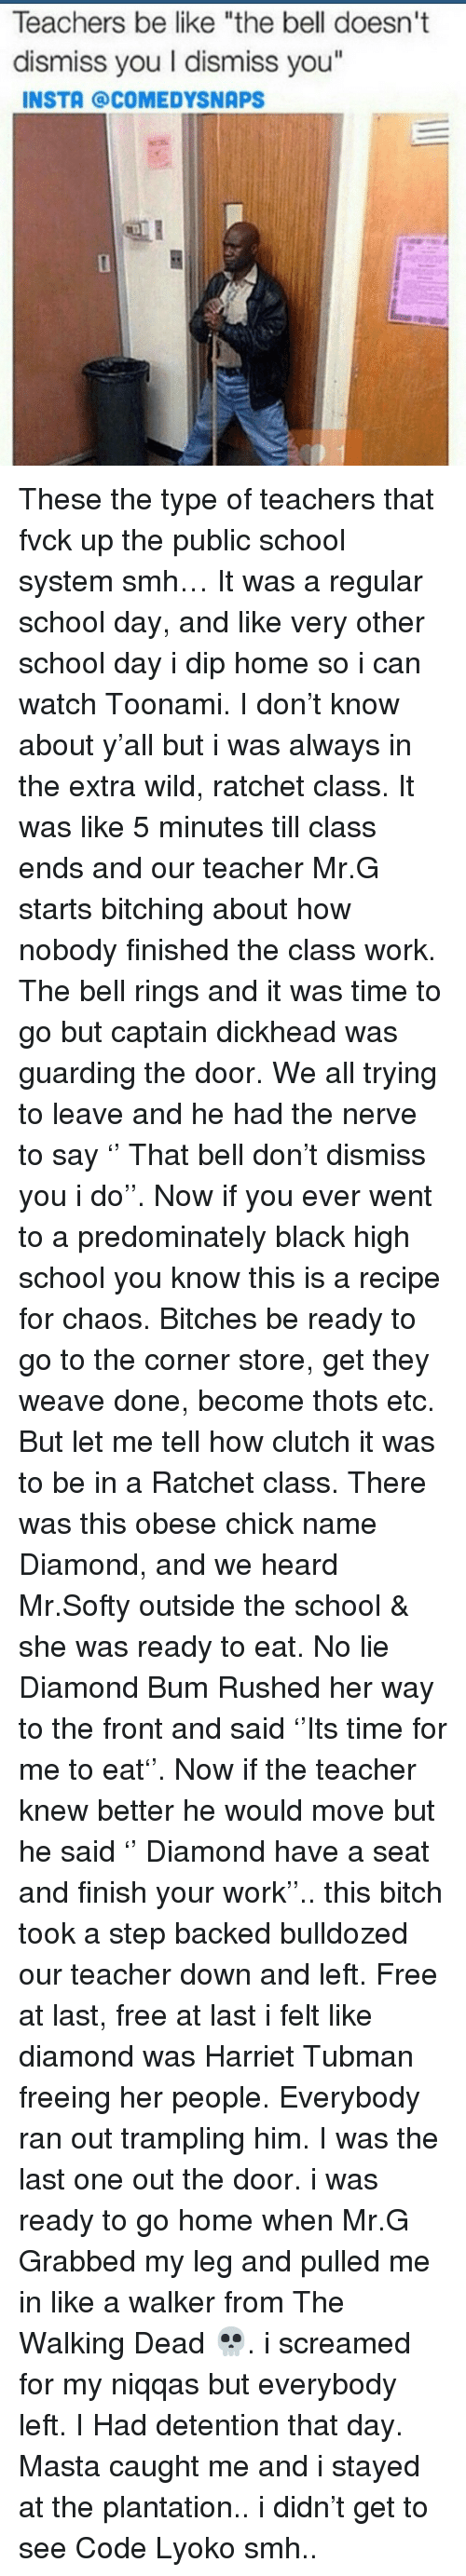 """Be Like, Bitch, and Memes: Teachers be like """"the bell doesn't  dismiss you I dismiss you  INSTA @COMEDYSNAPS These the type of teachers that fvck up the public school system smh… It was a regular school day, and like very other school day i dip home so i can watch Toonami. I don't know about y'all but i was always in the extra wild, ratchet class. It was like 5 minutes till class ends and our teacher Mr.G starts bitching about how nobody finished the class work. The bell rings and it was time to go but captain dickhead was guarding the door. We all trying to leave and he had the nerve to say '' That bell don't dismiss you i do''. Now if you ever went to a predominately black high school you know this is a recipe for chaos. Bitches be ready to go to the corner store, get they weave done, become thots etc. But let me tell how clutch it was to be in a Ratchet class. There was this obese chick name Diamond, and we heard Mr.Softy outside the school & she was ready to eat. No lie Diamond Bum Rushed her way to the front and said ''Its time for me to eat''. Now if the teacher knew better he would move but he said '' Diamond have a seat and finish your work''.. this bitch took a step backed bulldozed our teacher down and left. Free at last, free at last i felt like diamond was Harriet Tubman freeing her people. Everybody ran out trampling him. I was the last one out the door. i was ready to go home when Mr.G Grabbed my leg and pulled me in like a walker from The Walking Dead 💀. i screamed for my niqqas but everybody left. I Had detention that day. Masta caught me and i stayed at the plantation.. i didn't get to see Code Lyoko smh.."""